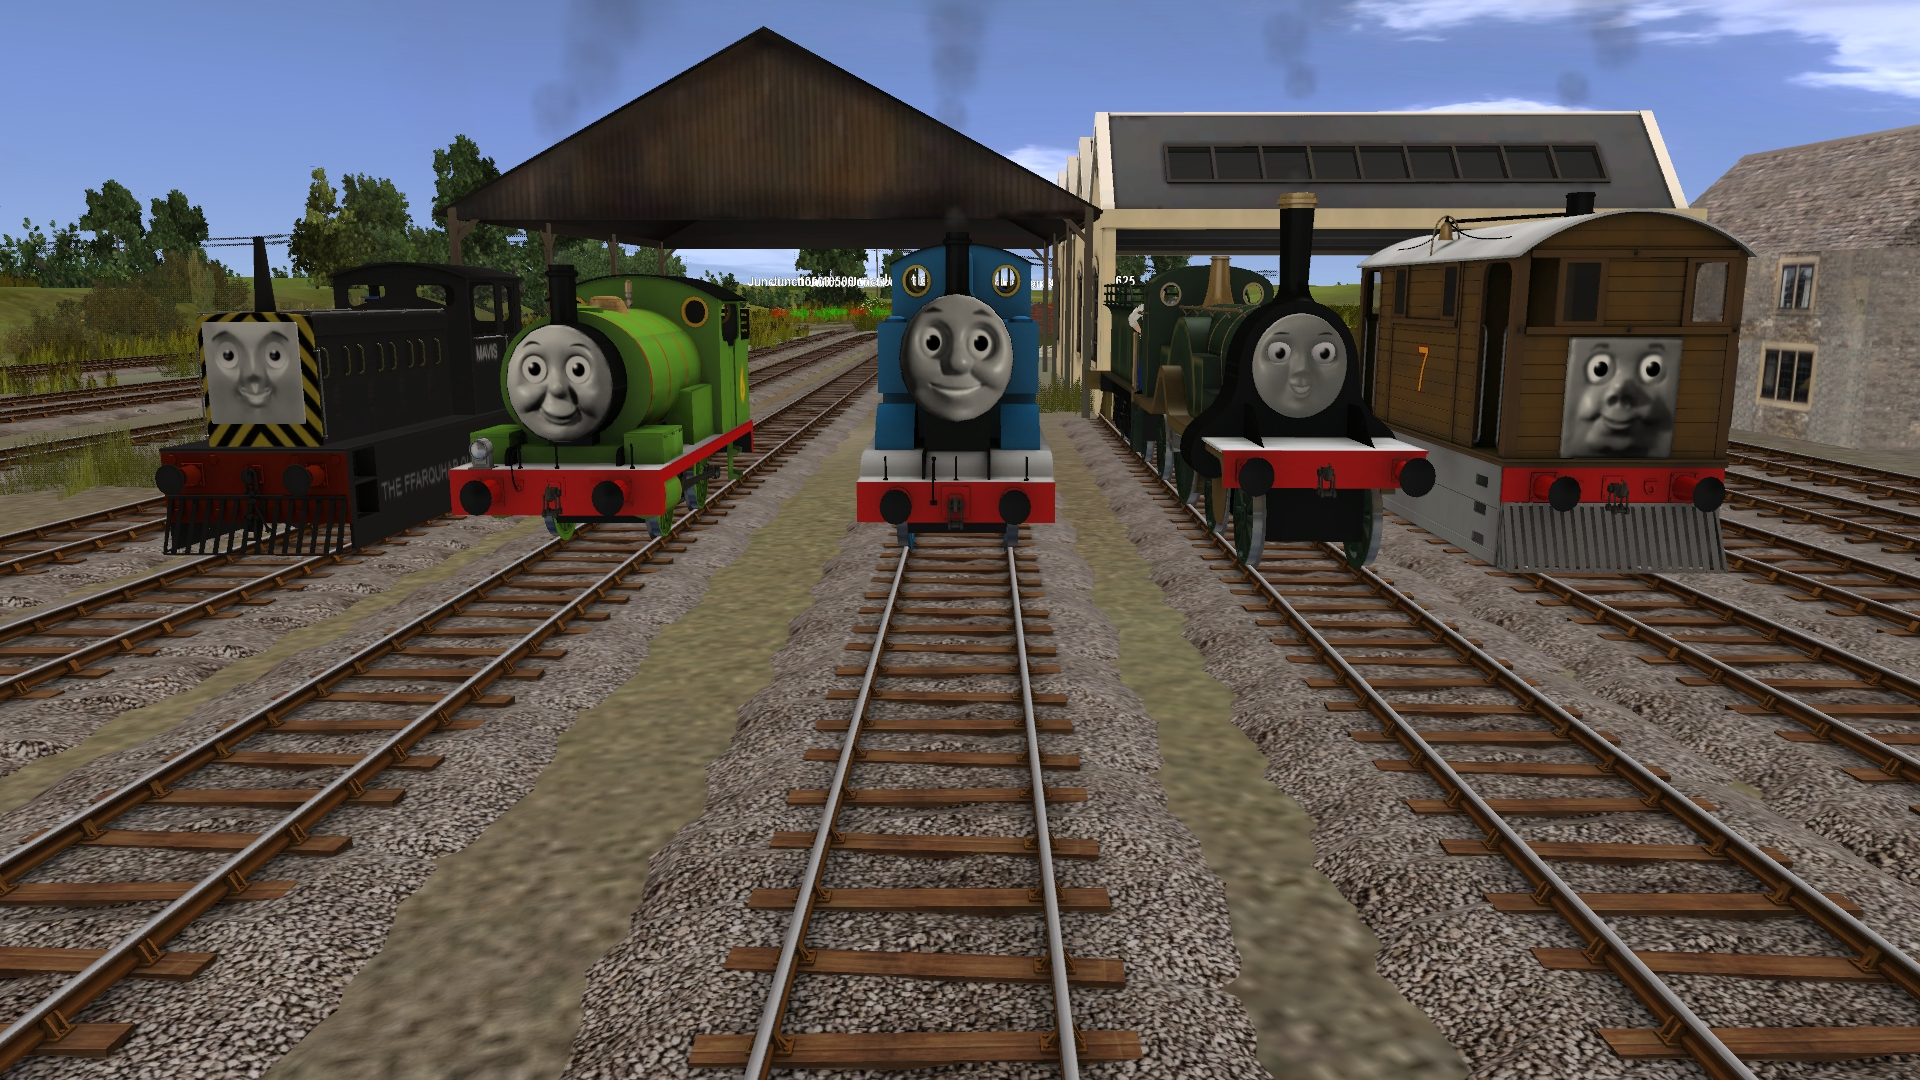 Image boco in trainz thomas and friends png scratchpad fandom - Molly Trainz Related Keywords Suggestions Molly Trainz